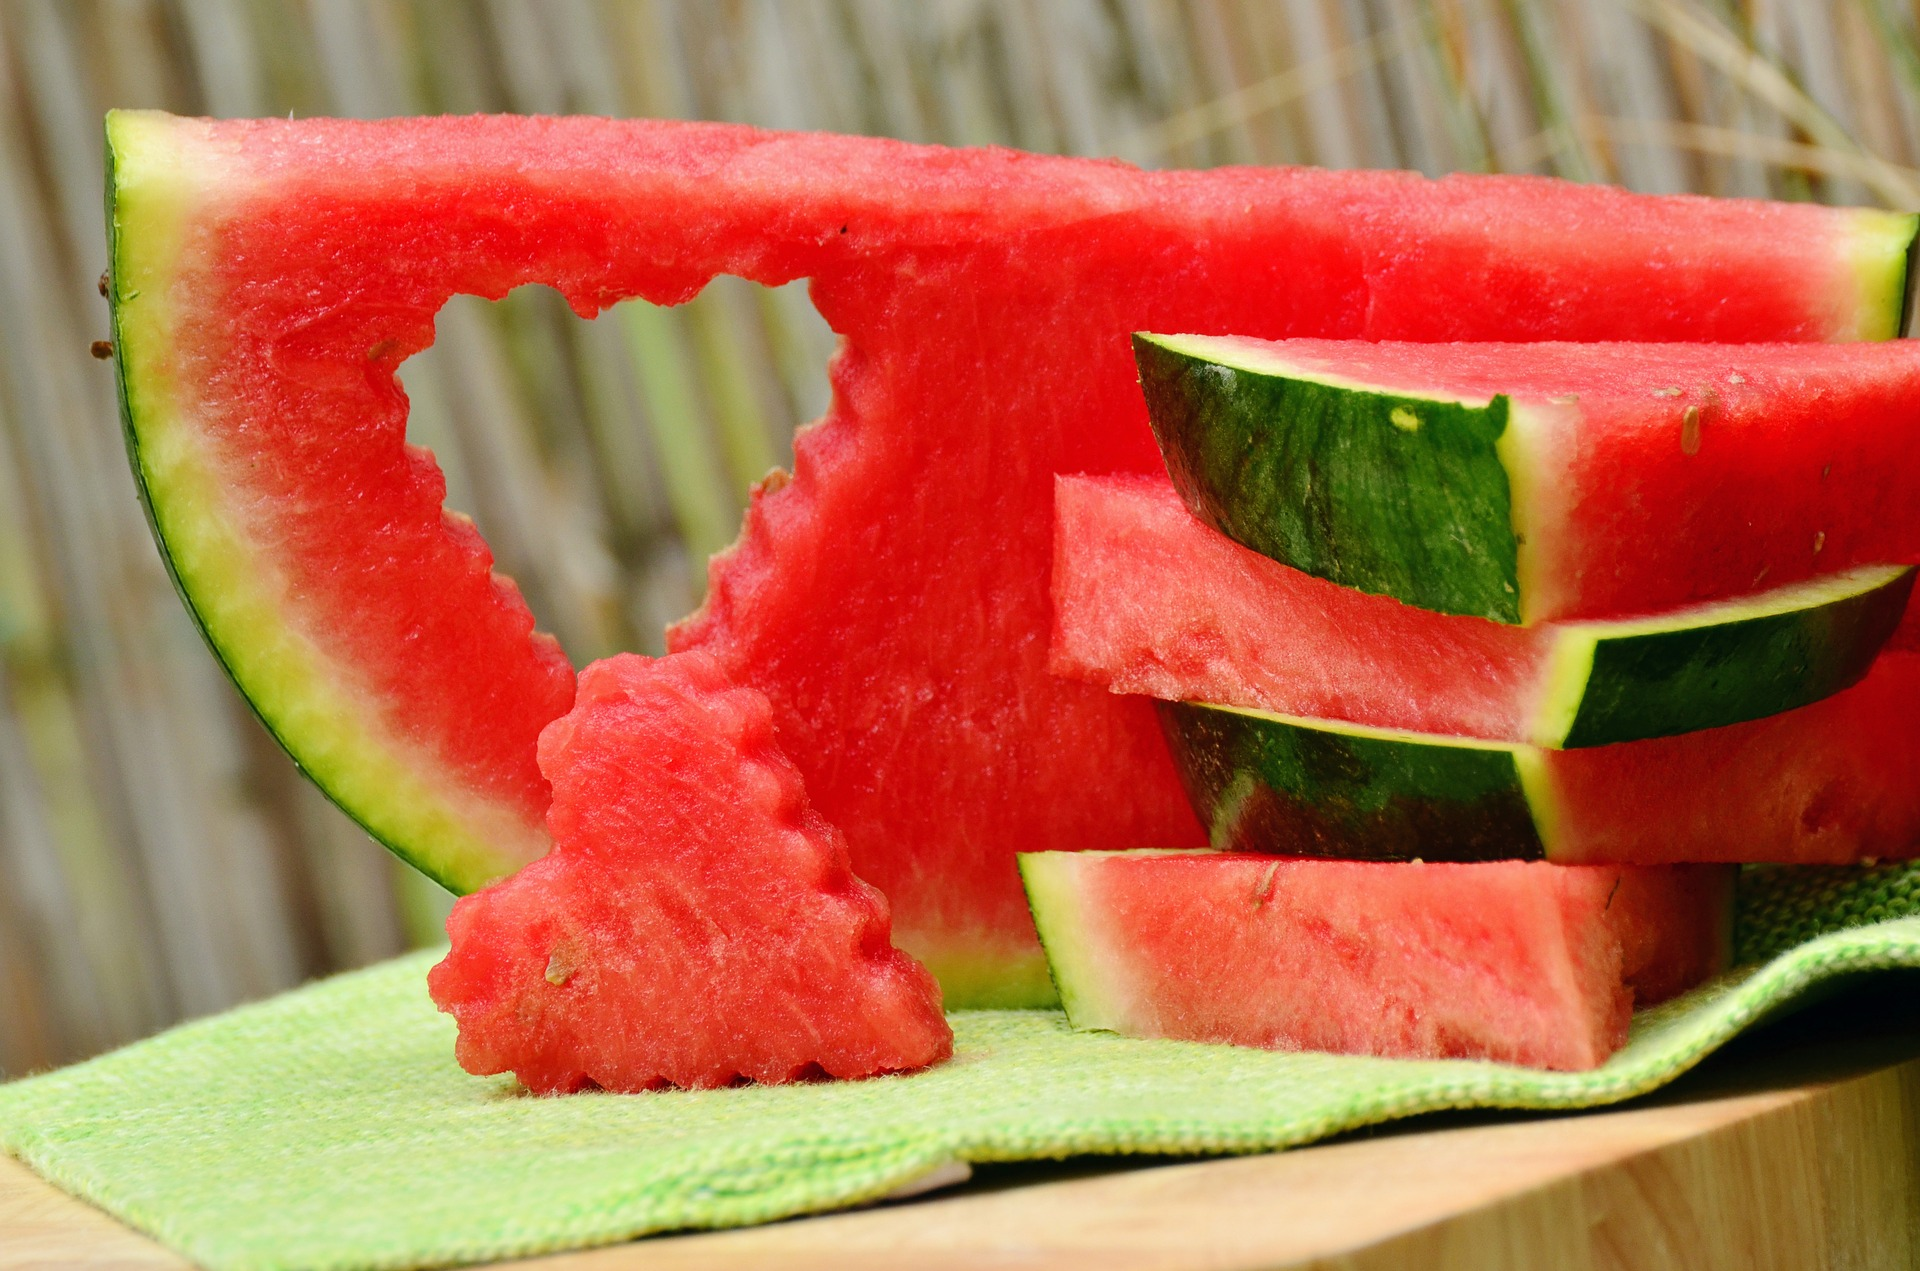 Dutch startup news update: Watermelon, eLinea, accelerators feel the heat